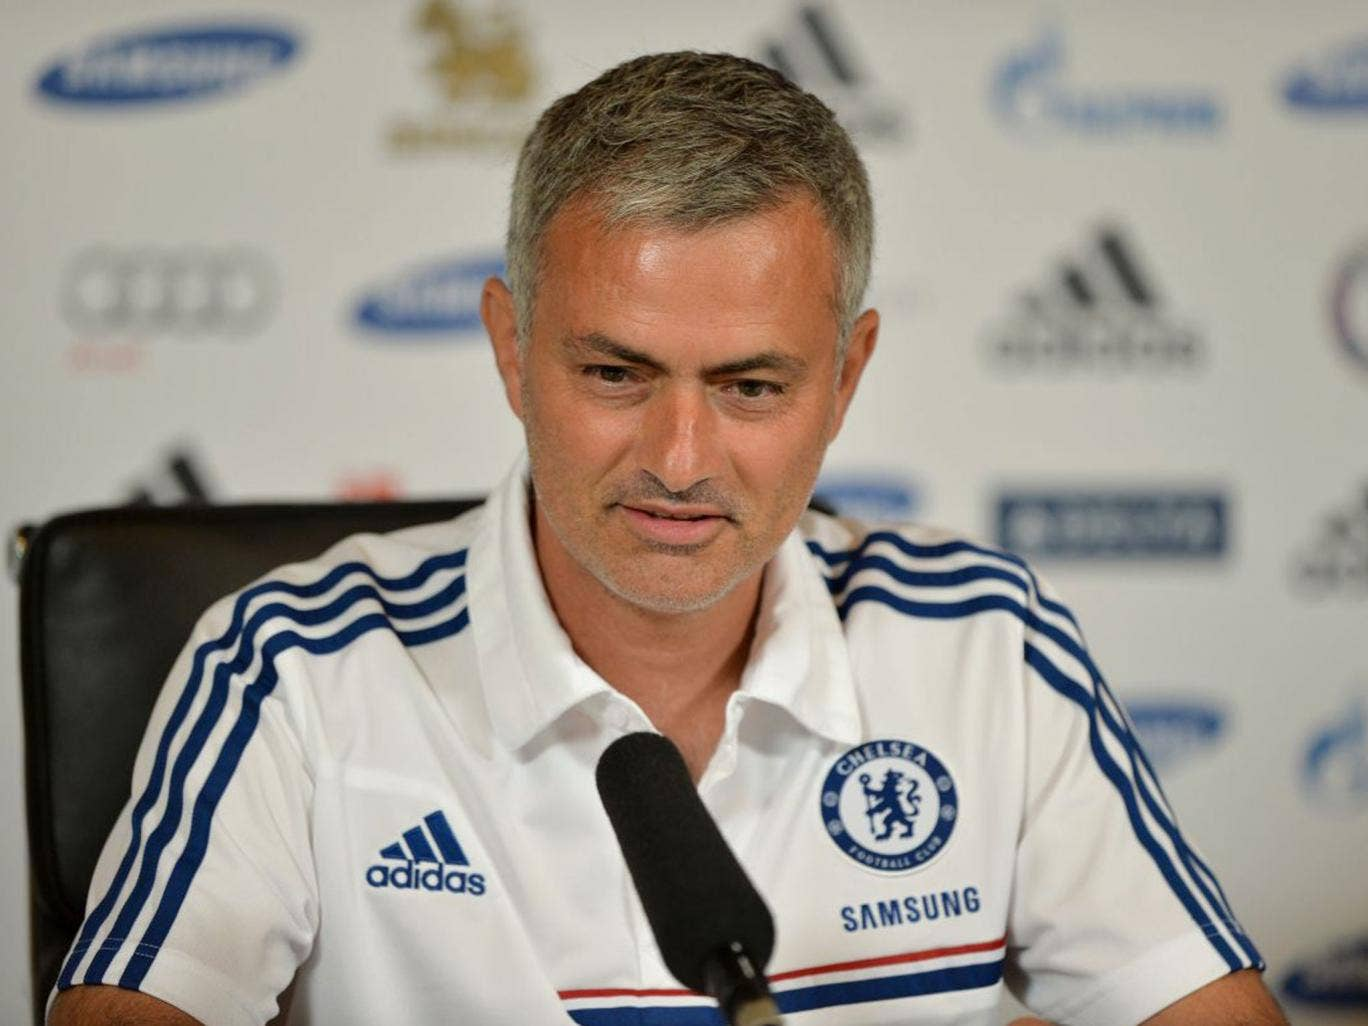 Mourinho has pledged to help England in his capacity as manager of Chelsea